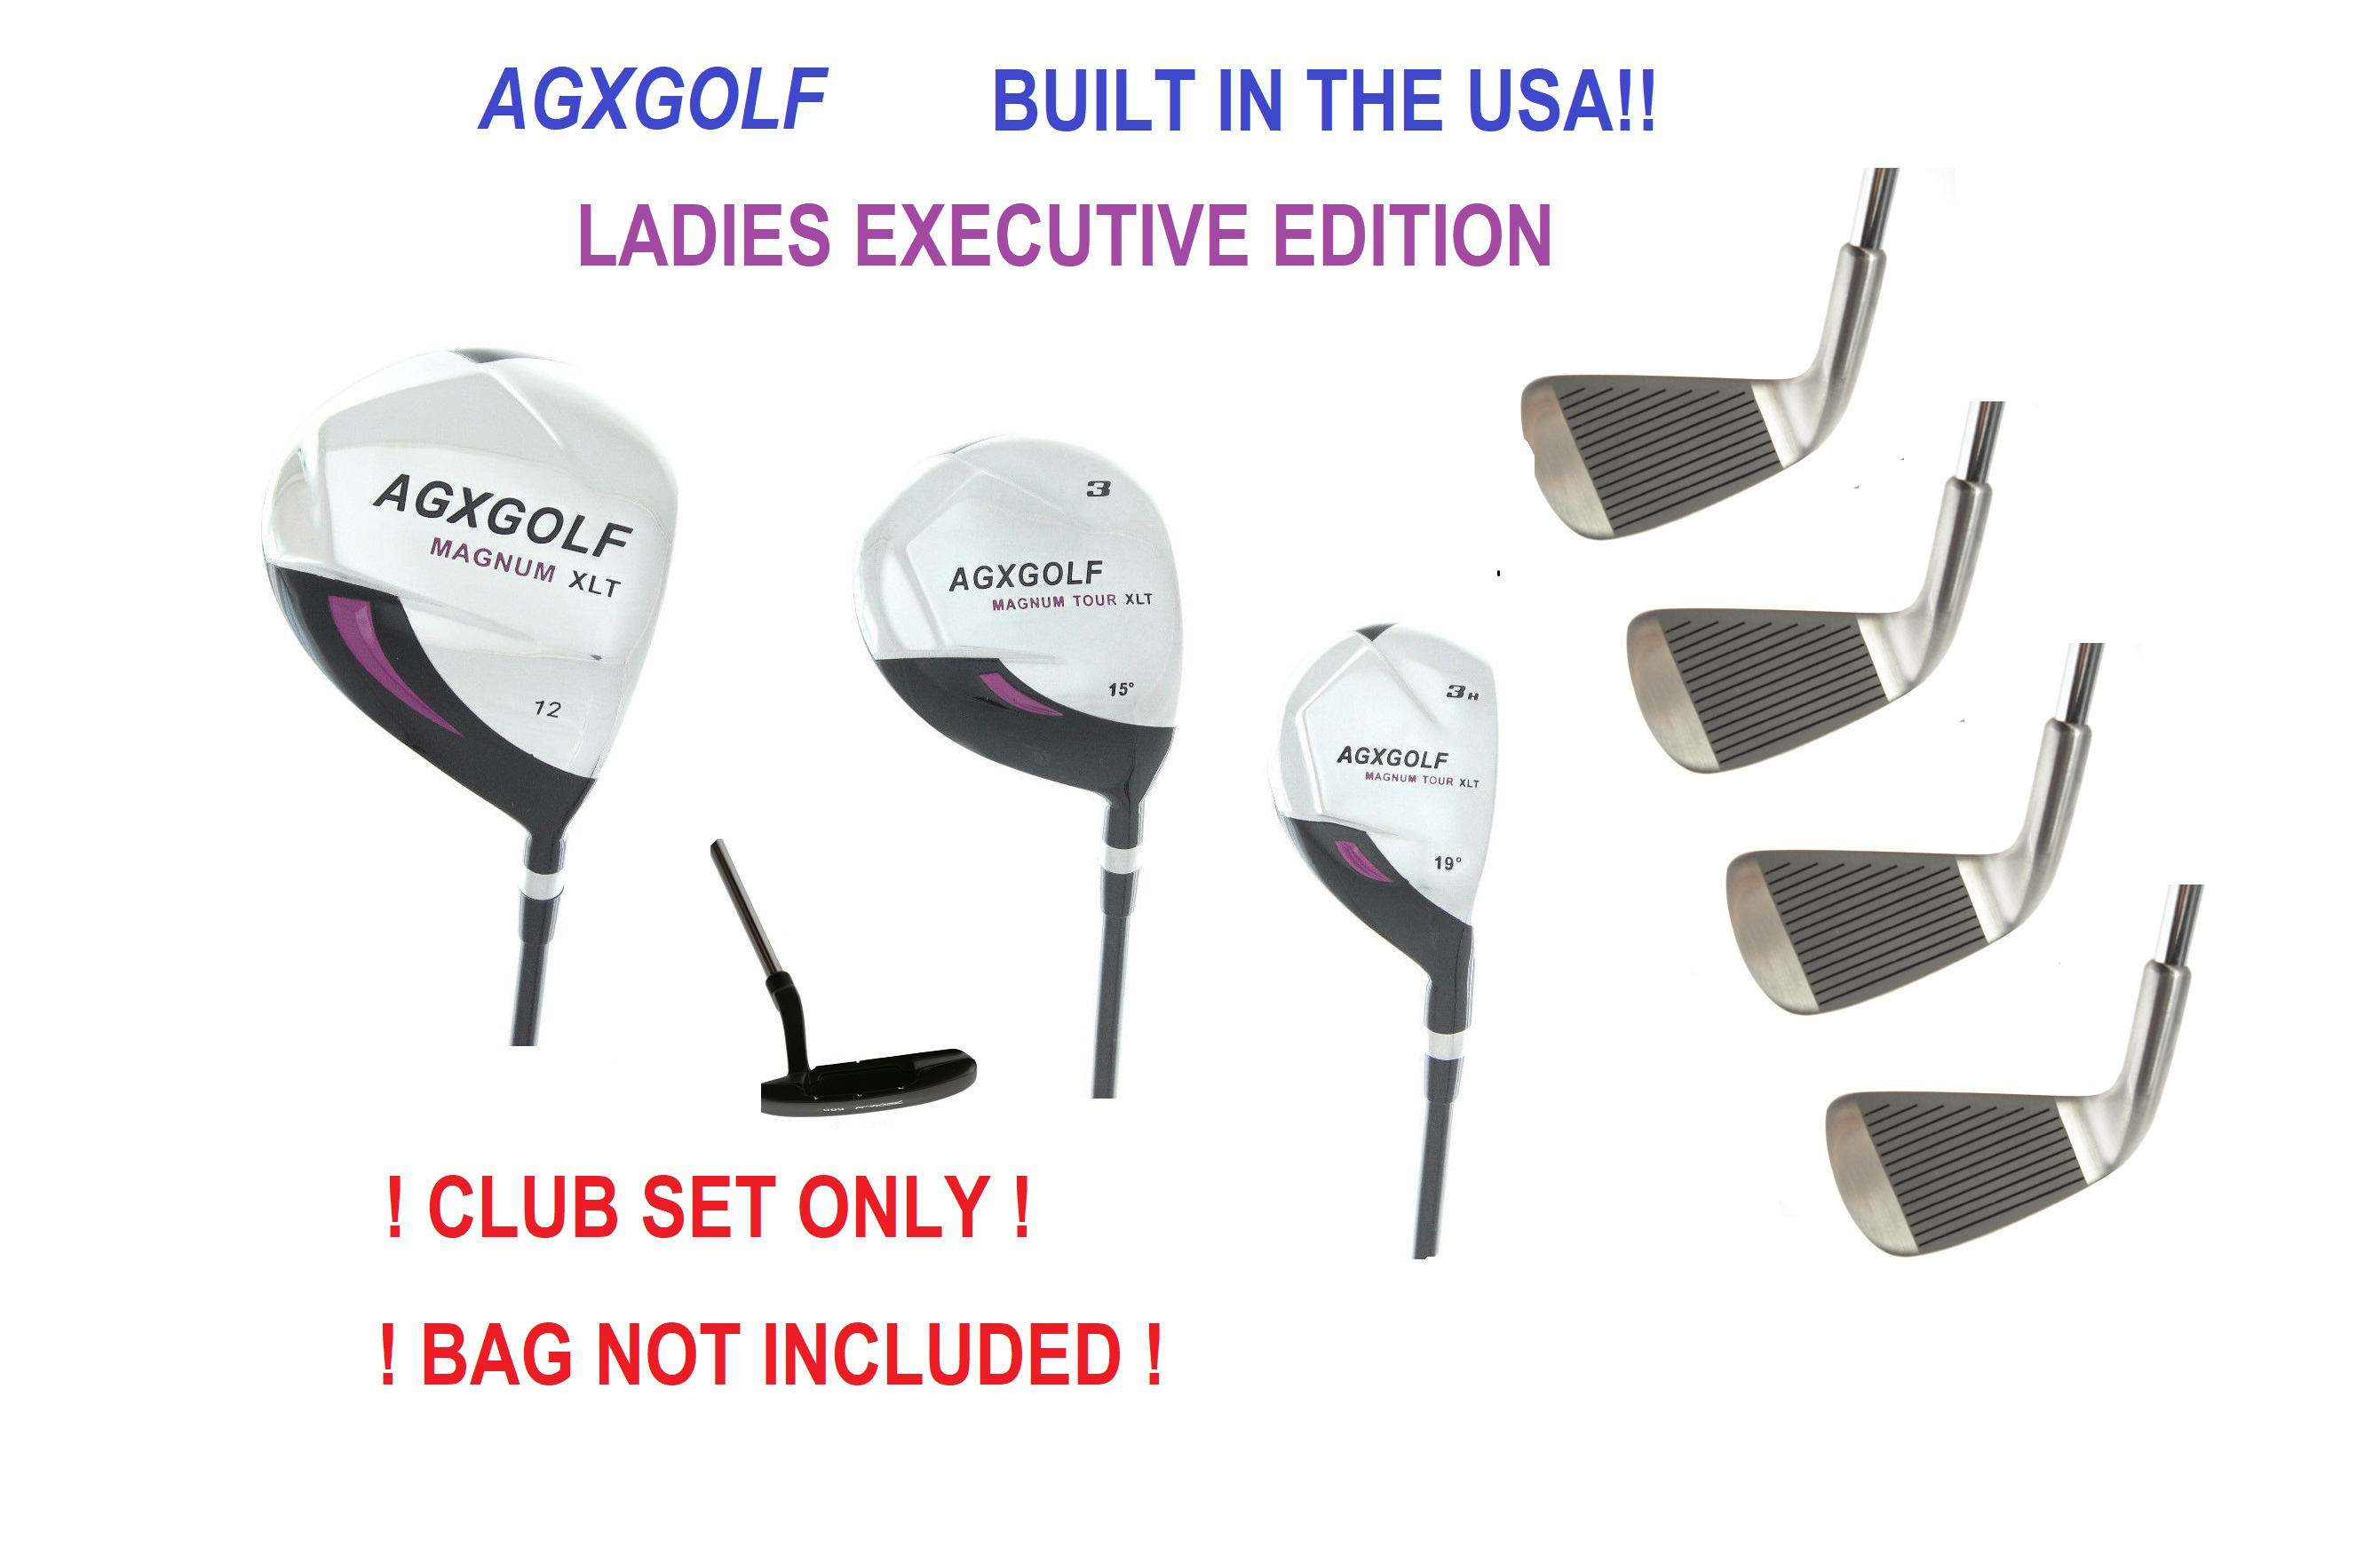 1074d7aeacd1 AGXGOLF LADIES EXECUTIVE EDITION COMPLETE GOLF CLUB SET wPUTTER & HEAD  COVERS: PETITE, REGULAR, OR TALL LENGTH BUILT IN THE USA